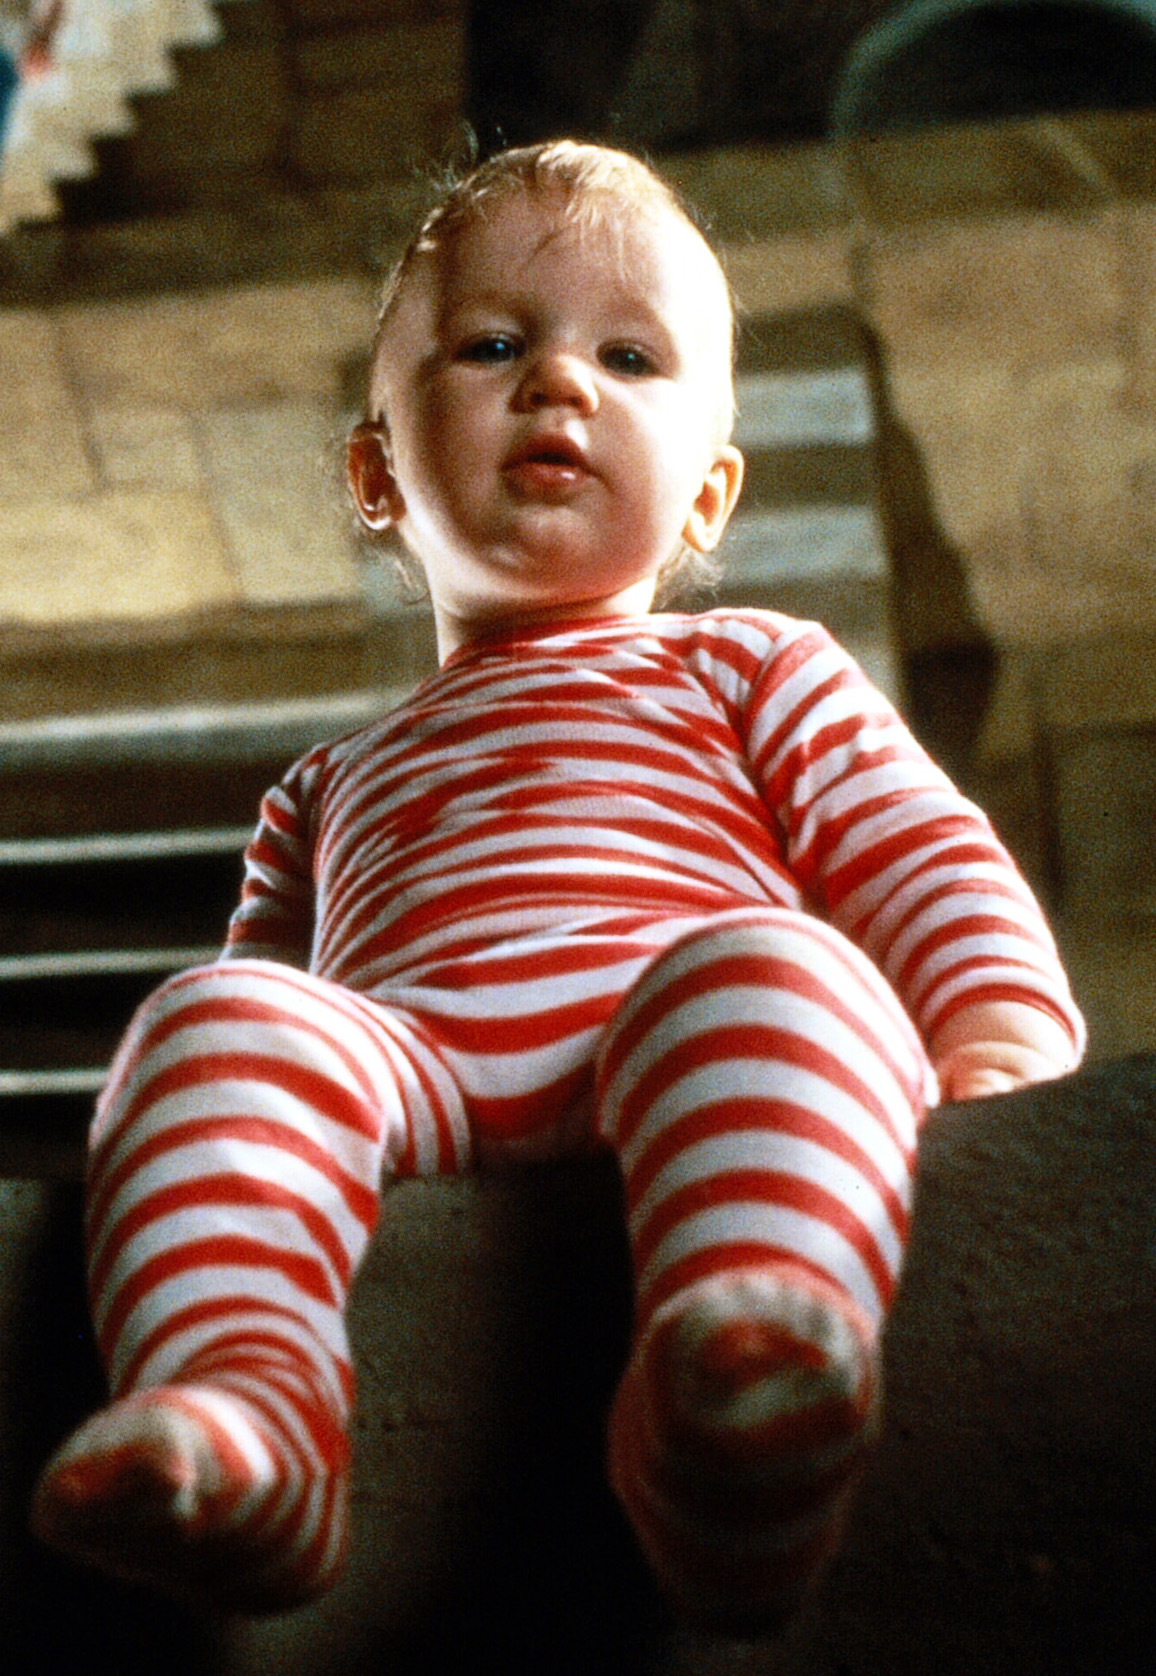 Toby from Labyrinth - a baby in red striped pajamas